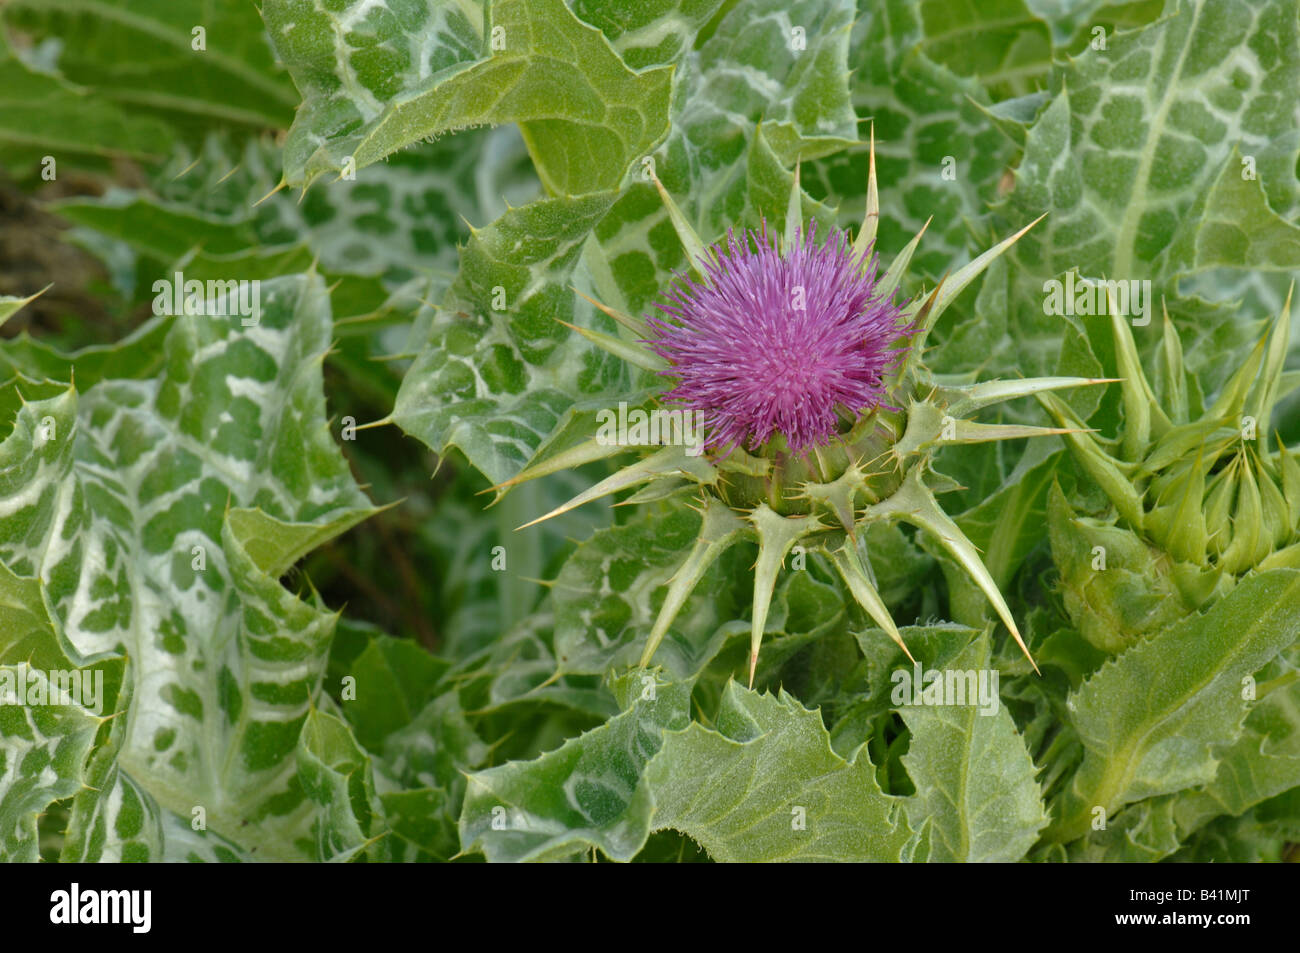 Blessed Milk Thistle,Our Ladys Thistle (Silybum marianum) flowering plant - Stock Image